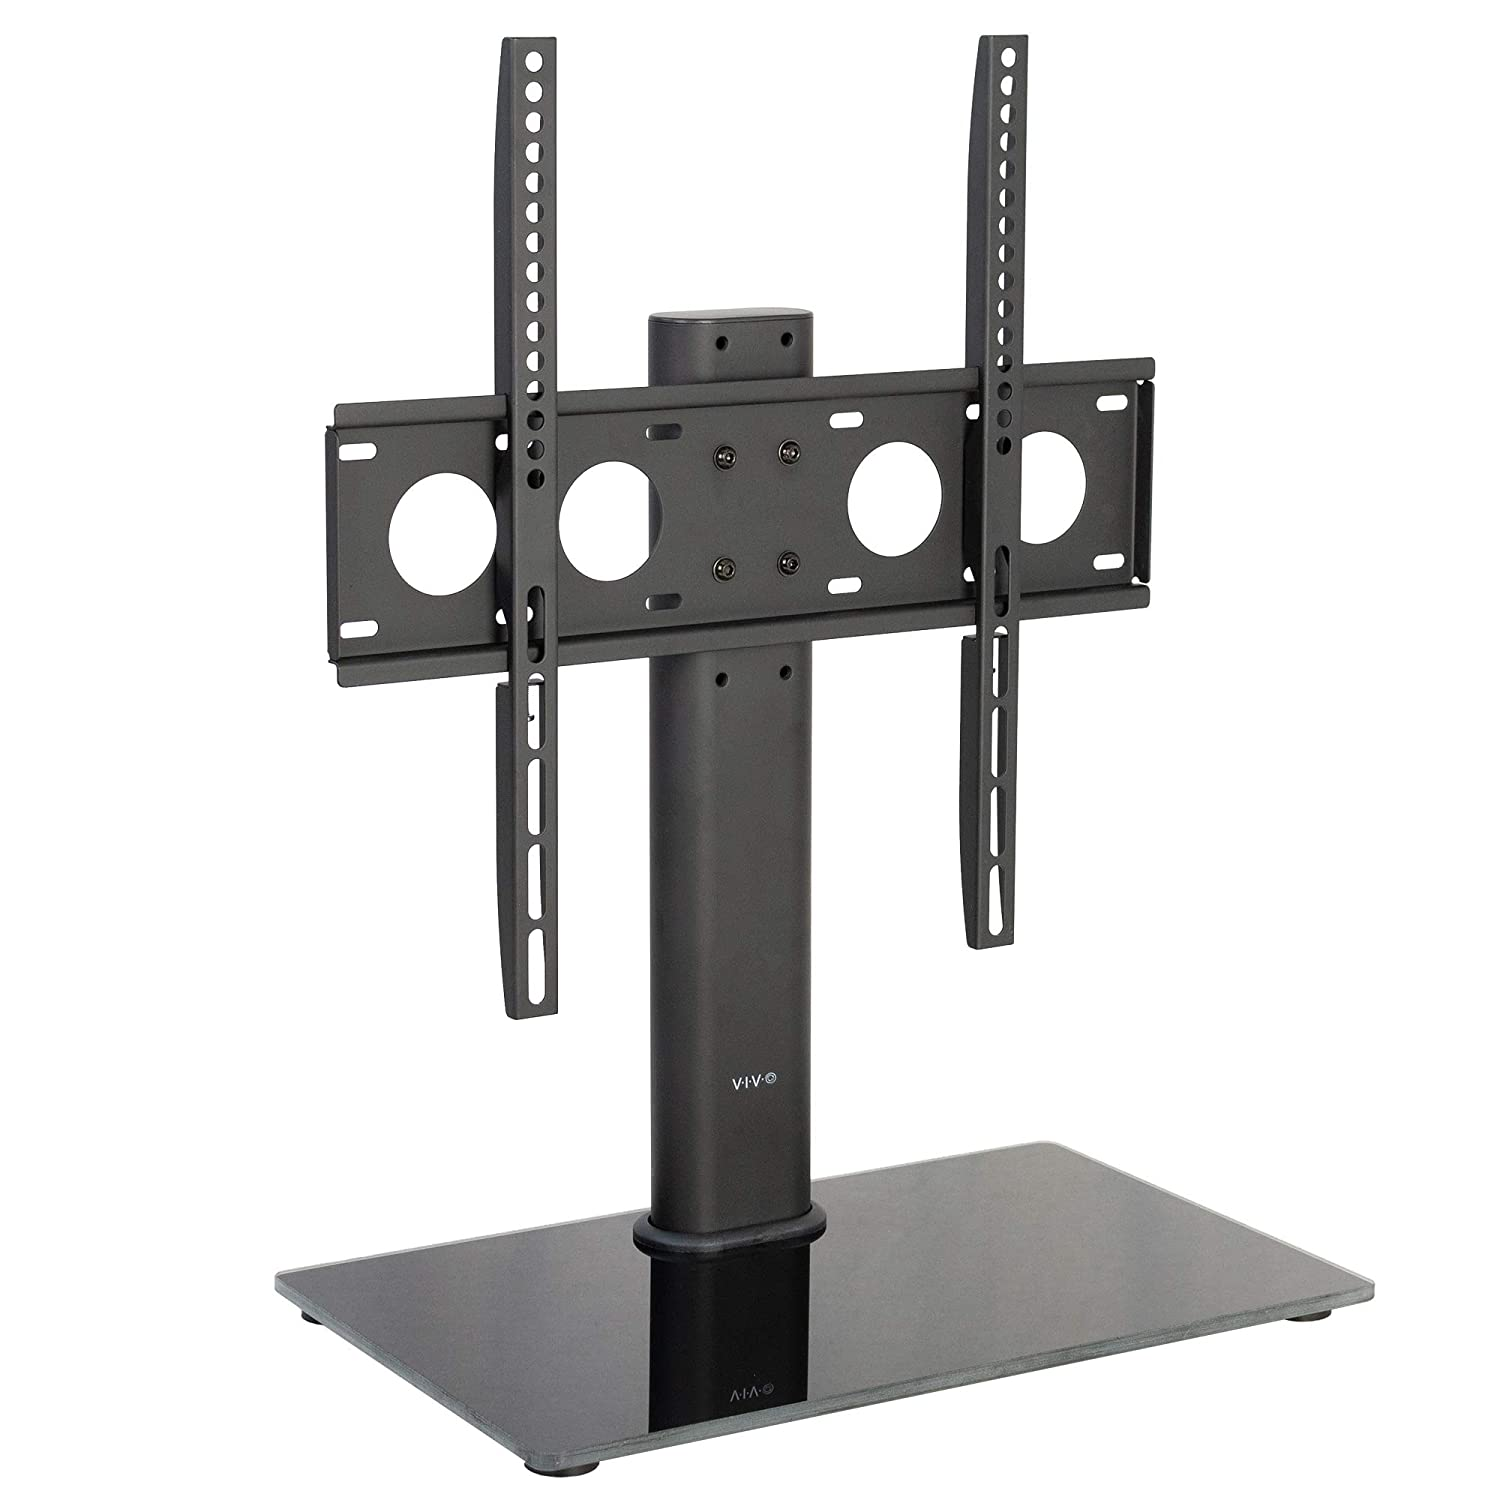 VIVO Black Universal TV Stand for 32 to 50 inch LCD LED Flat Screens Tabletop VESA Mount with Tempered Glass Base and Cable Management STAND-TV00J